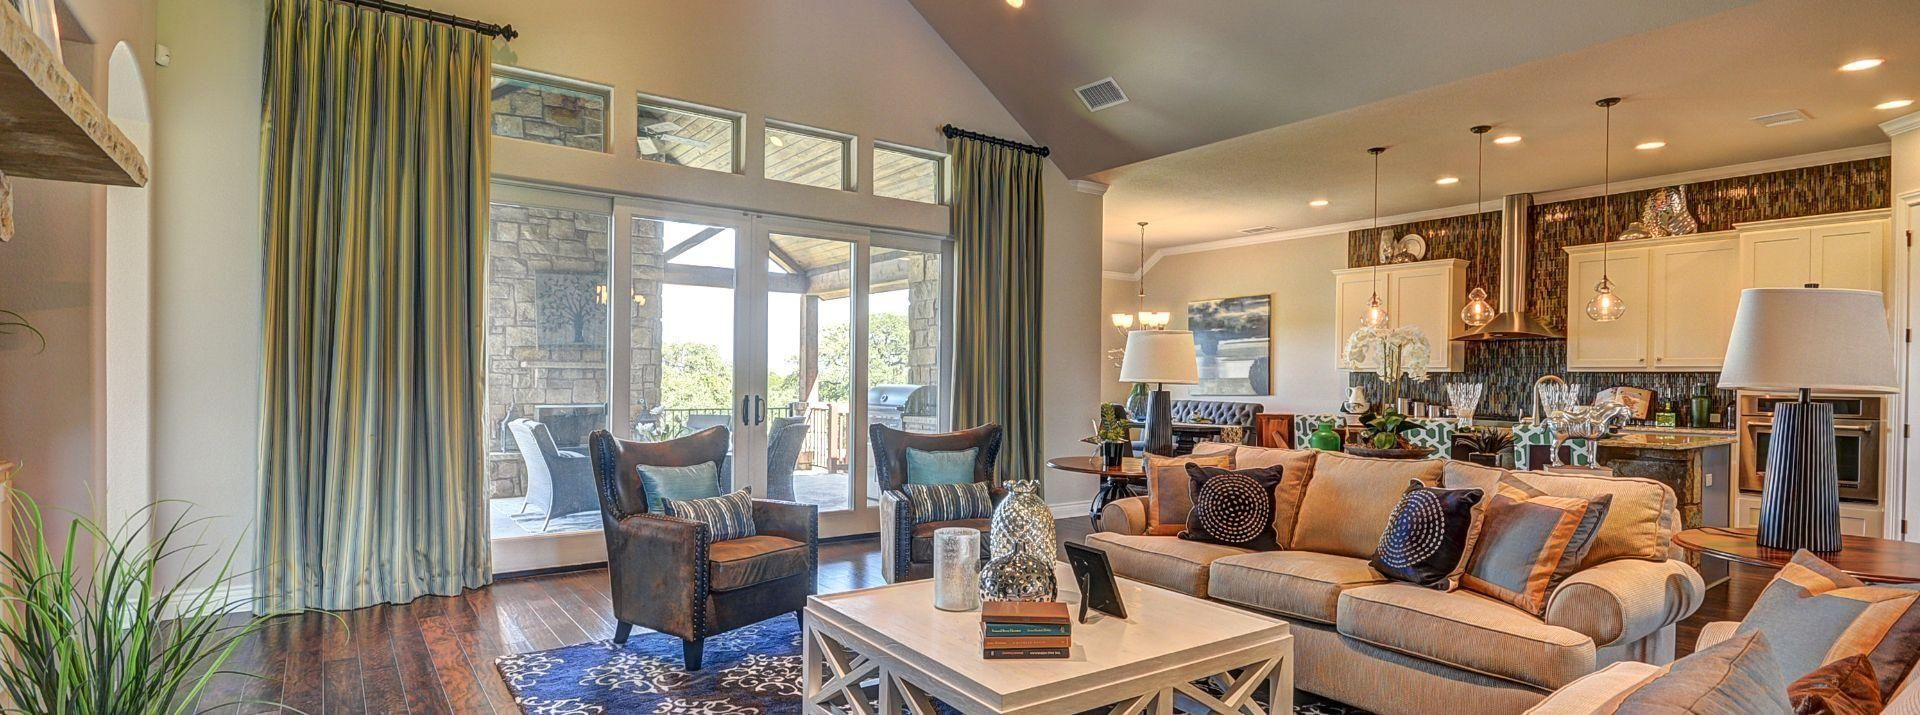 Family room century communities new homes for sale